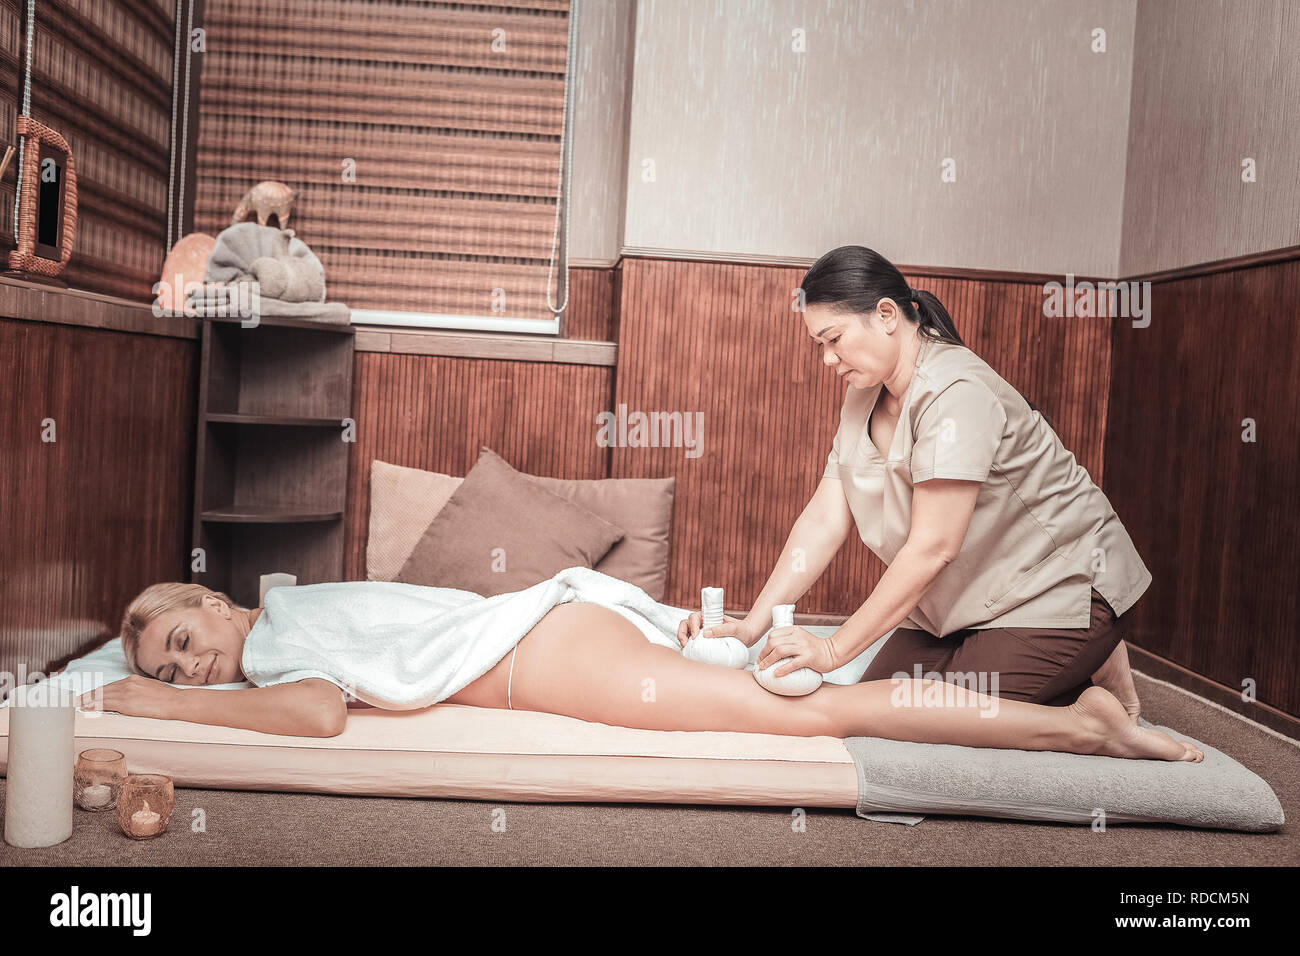 Nice skilled masseuse massaging her clients body - Stock Image